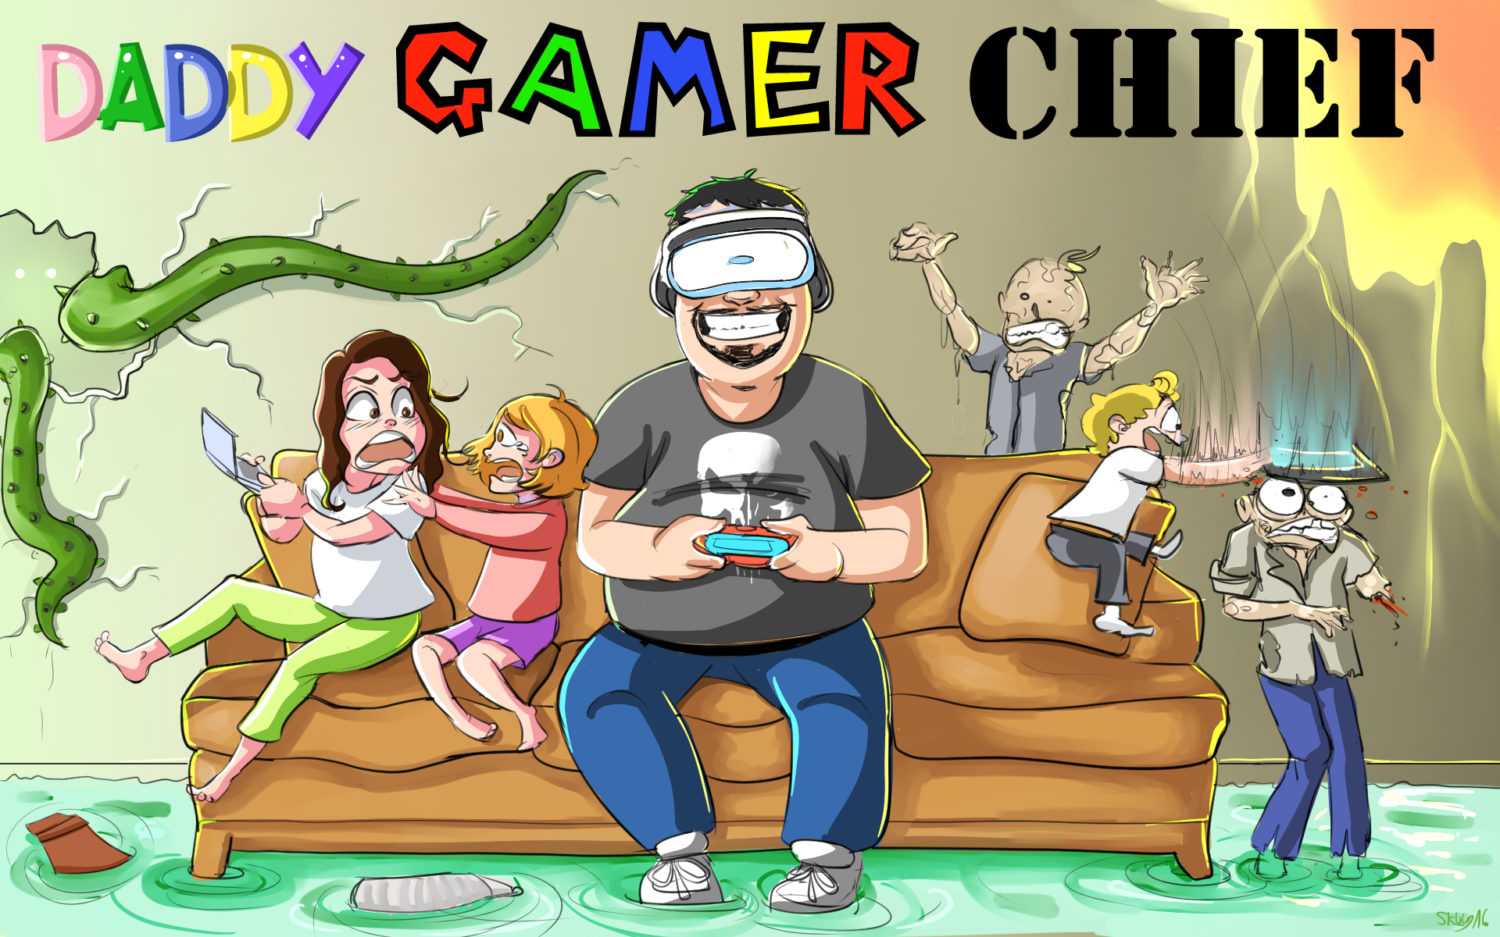 cropped-banni%C3%A8re-daddy-gamer-chief-4-1 Les Blogs à lire